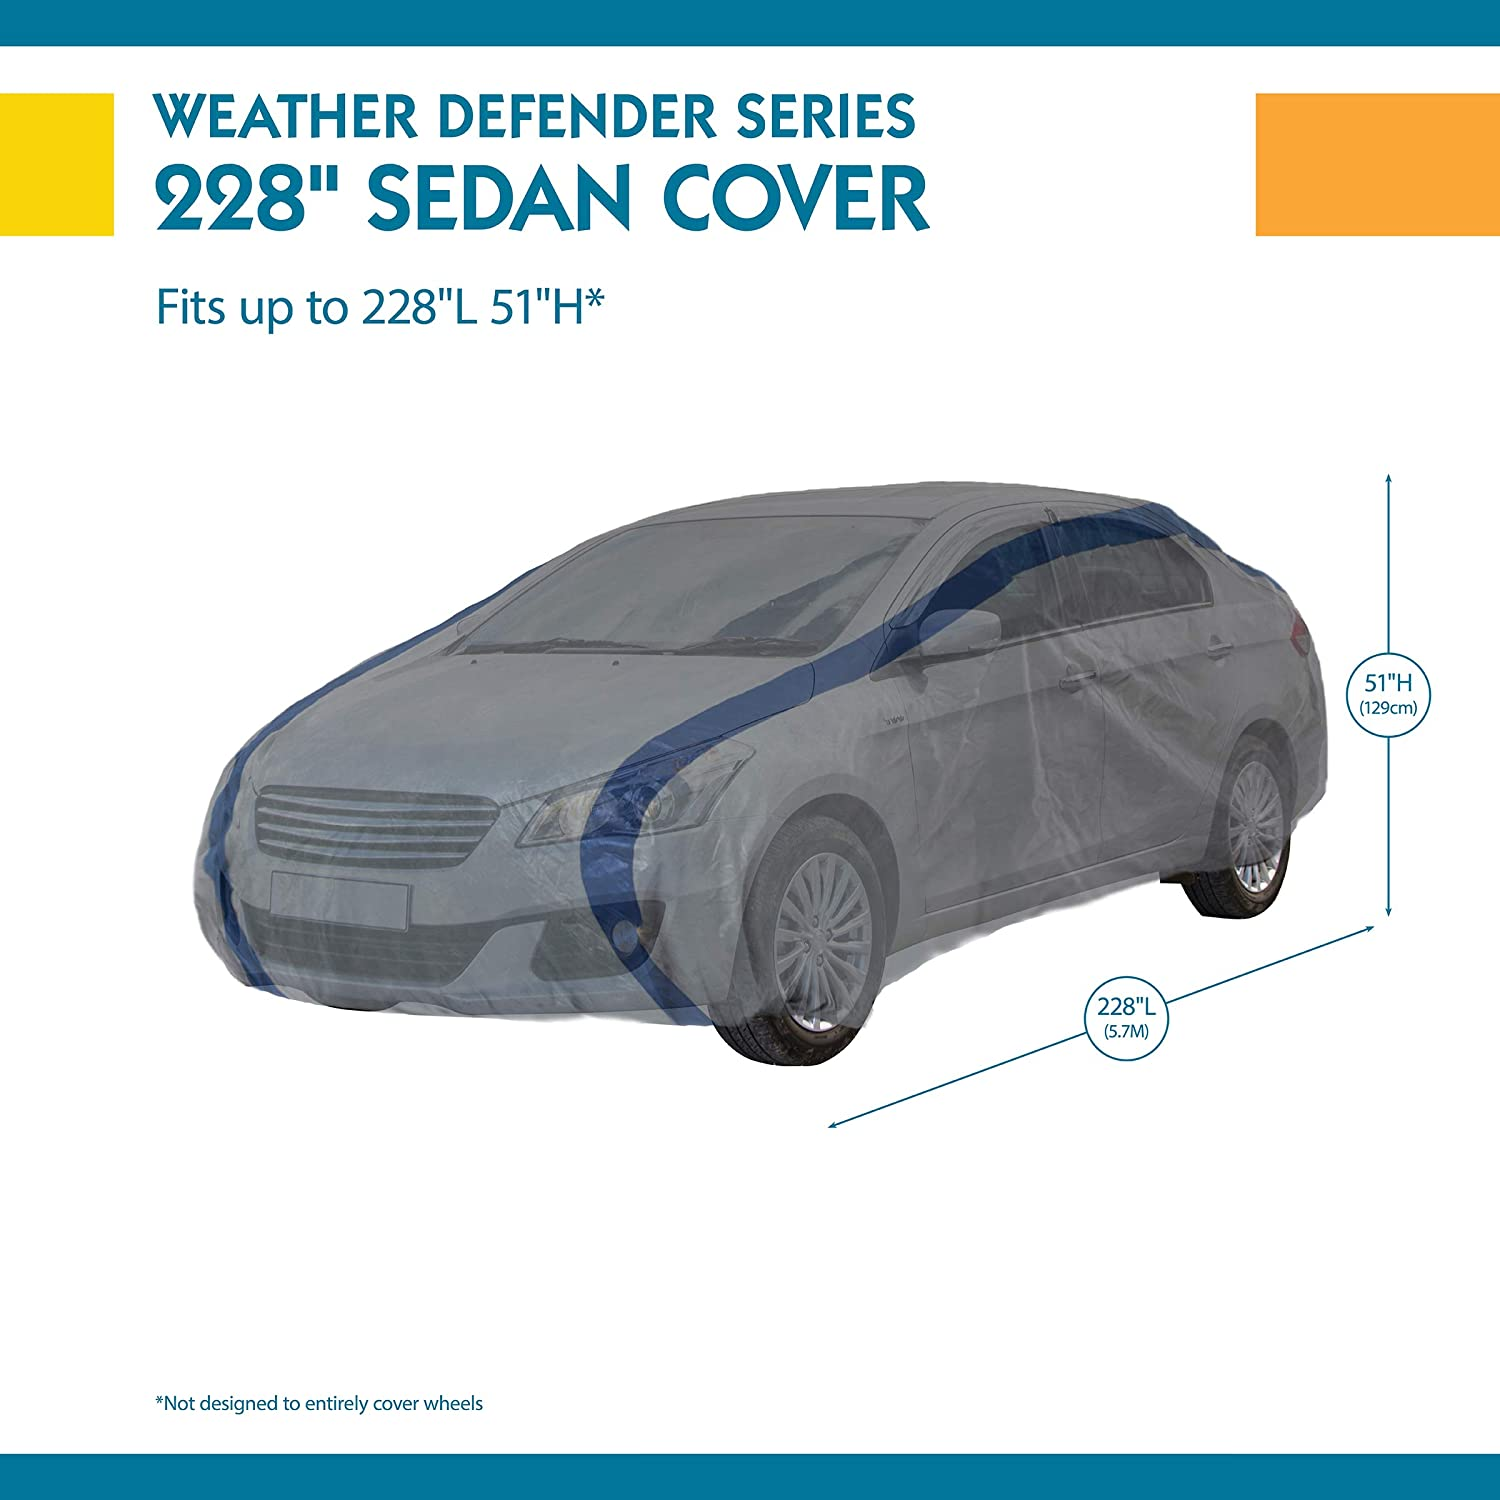 Custom Fit Duck Covers Weather Defender Car Cover for Sedans up to ...